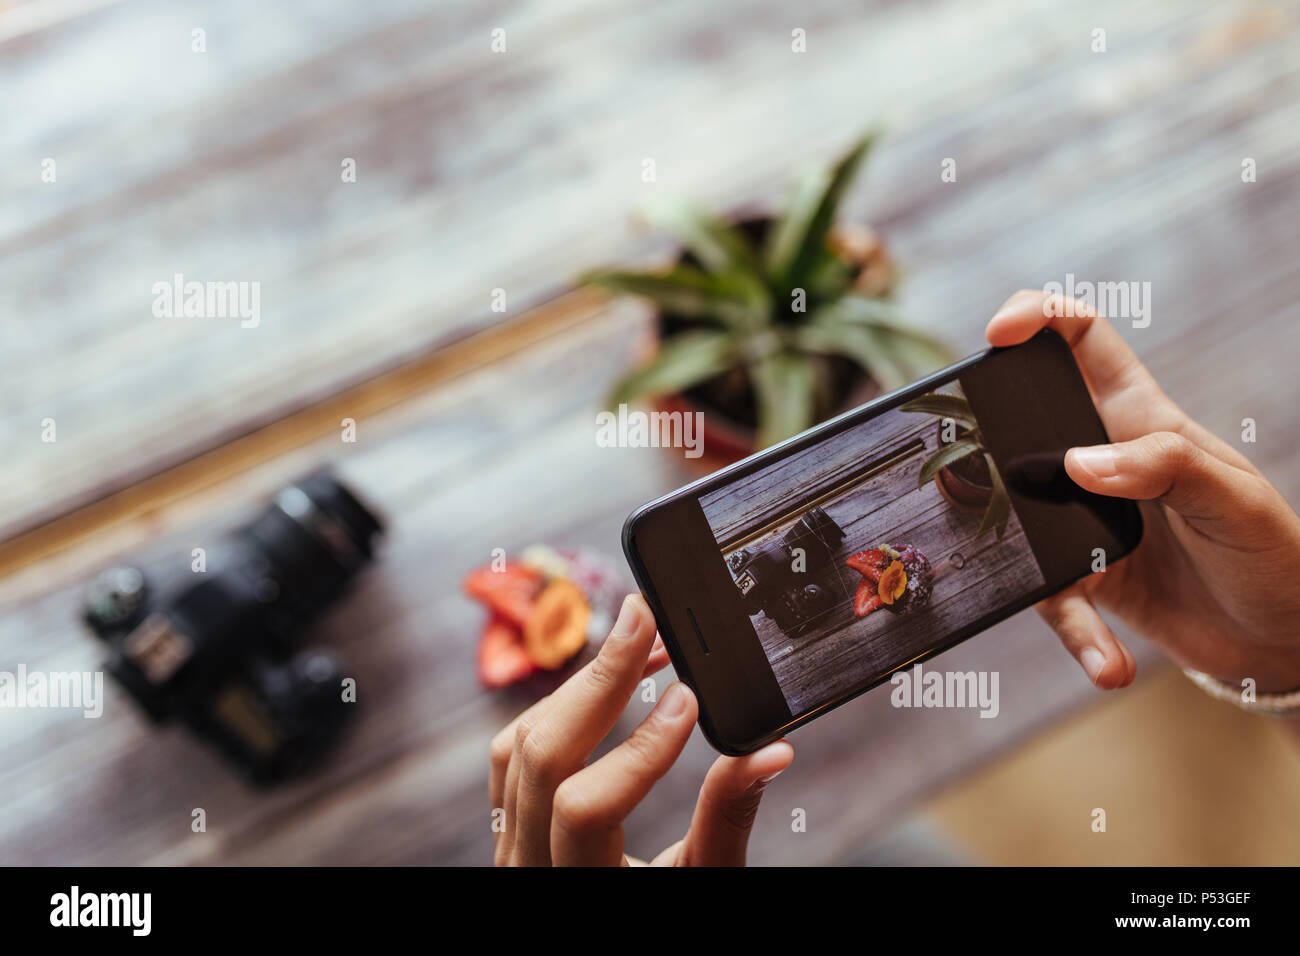 Close up of a woman taking photo of fruits in a bowl using a mobile phone for her food blog. Blogger capturing photo of a fruit bowl placed beside a c - Stock Image